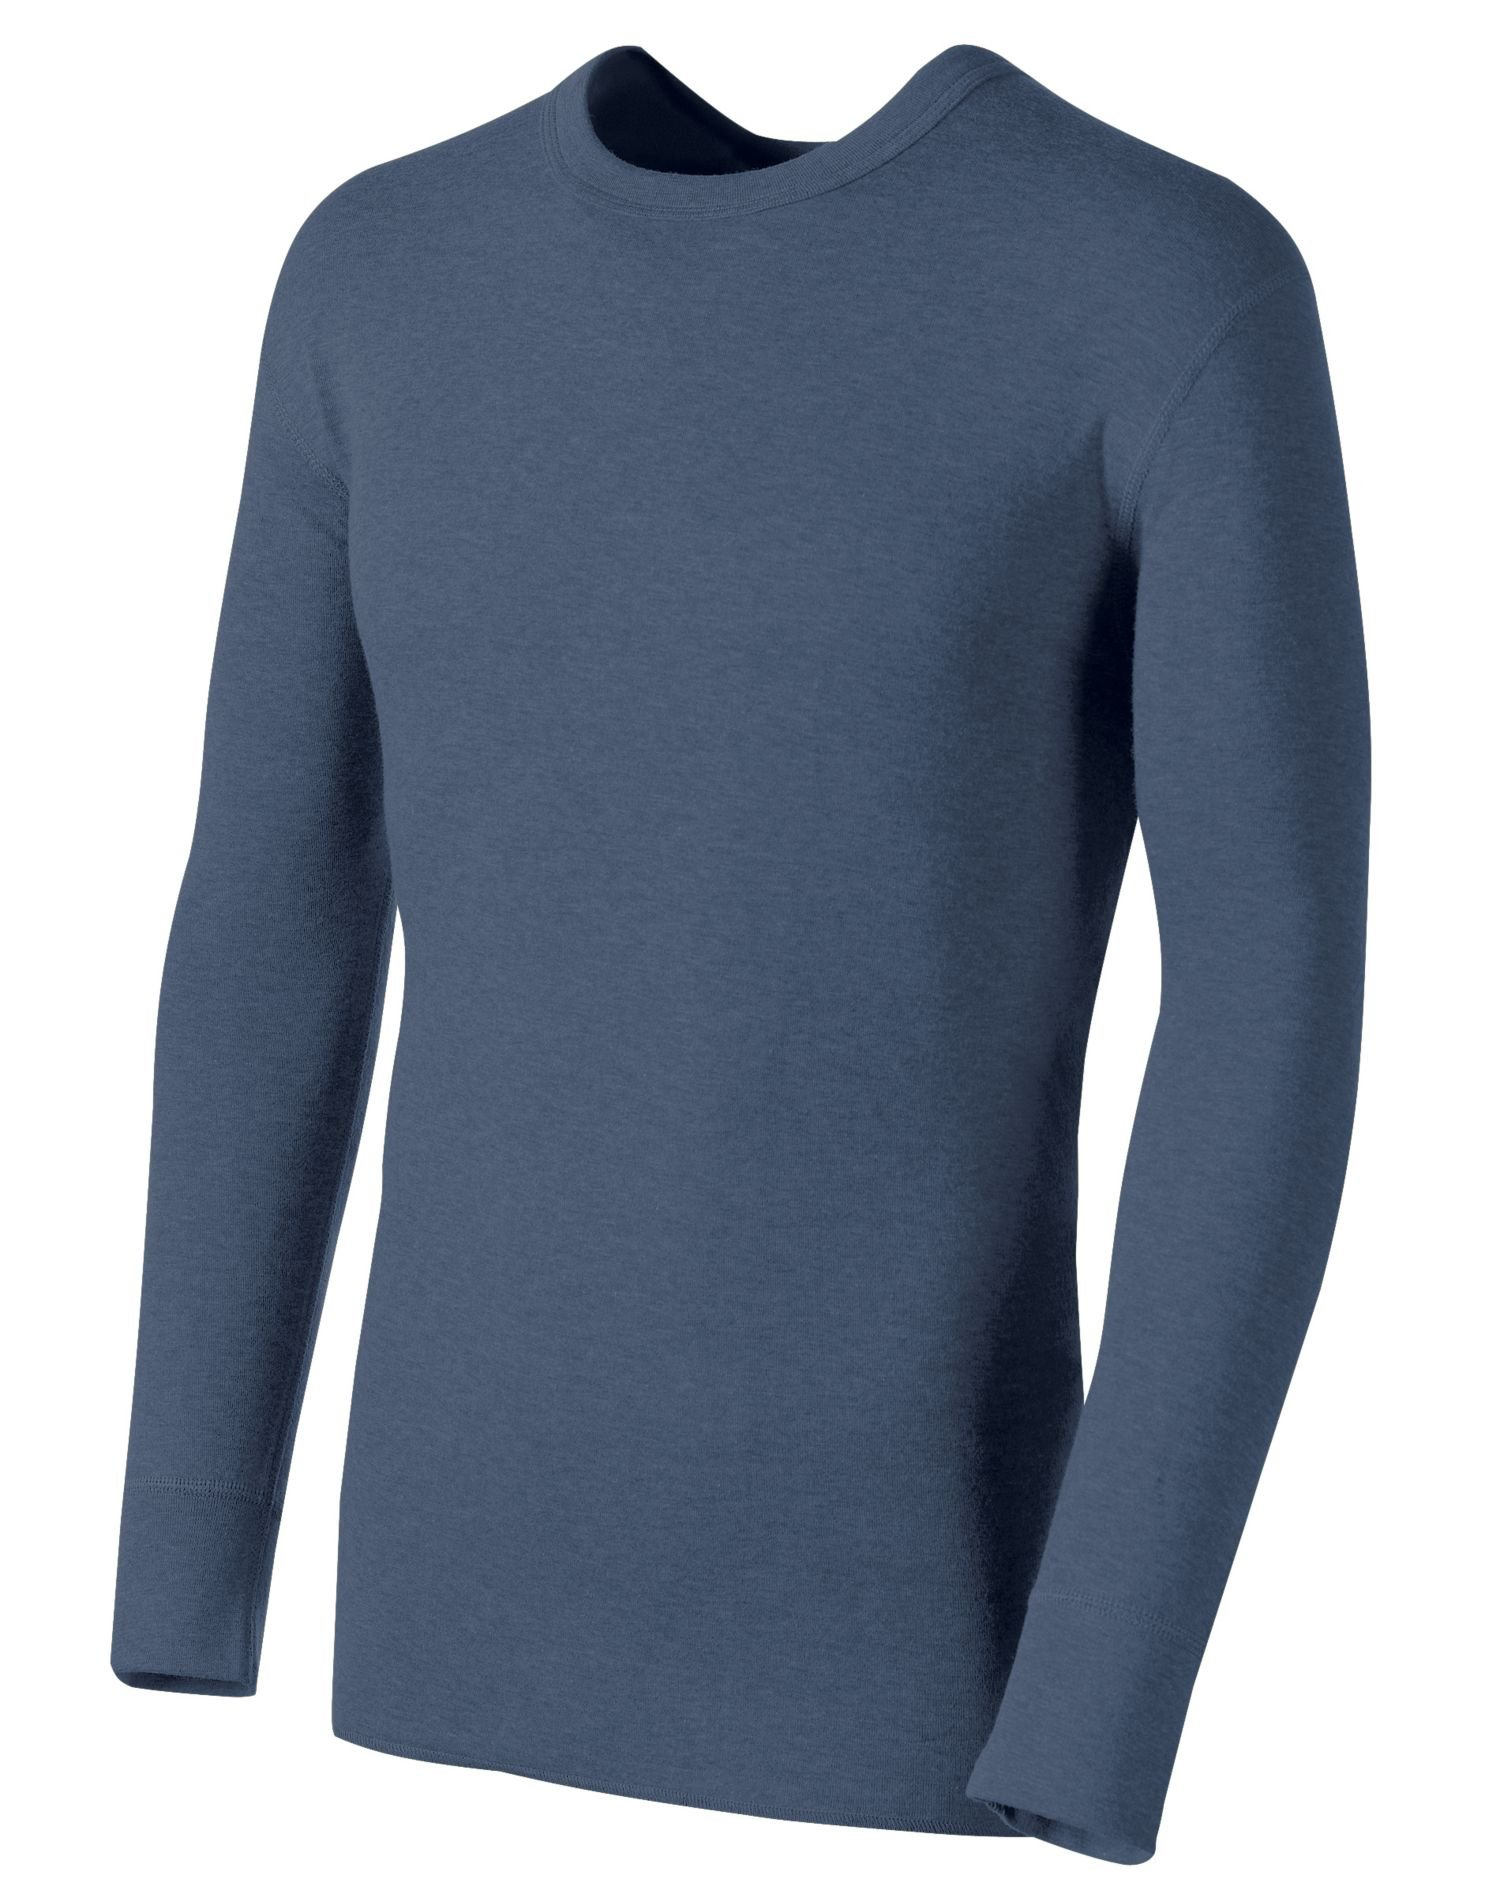 Duofold Men's Mid Weight Double Layer Thermal Shirt, Blue Jean, XX-Large